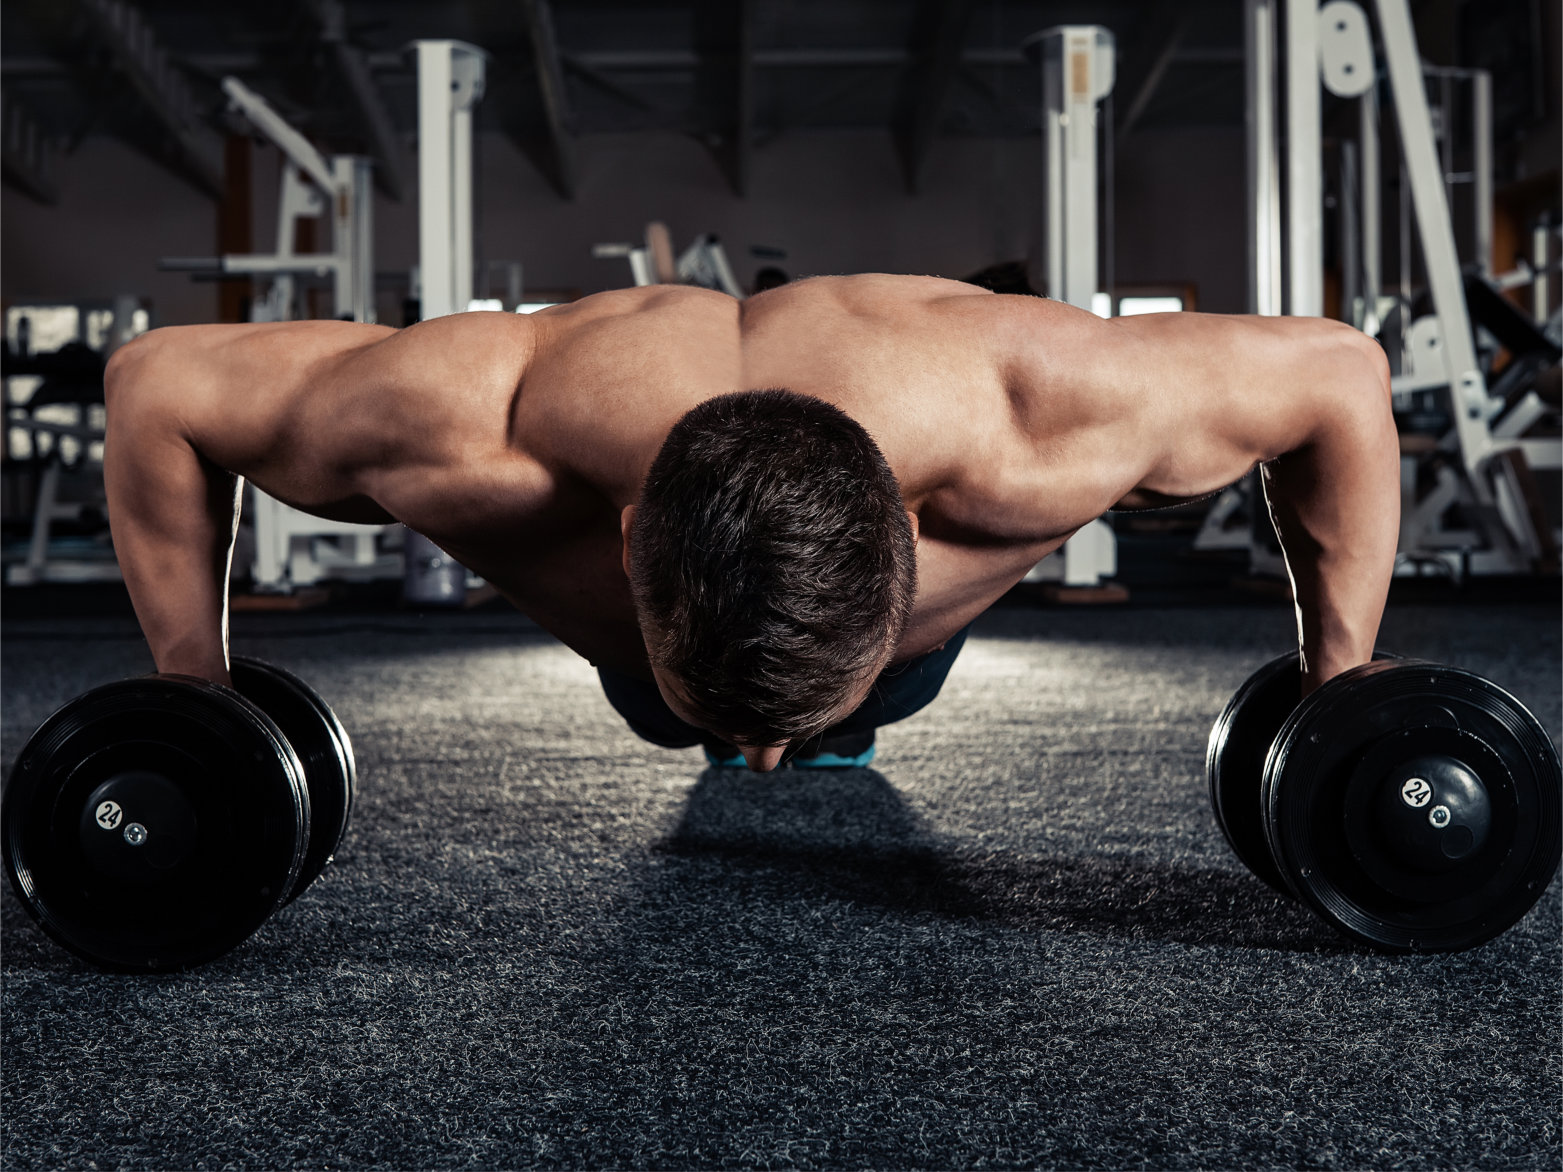 Handsome muscular man doing pushup exercise with dumbbell